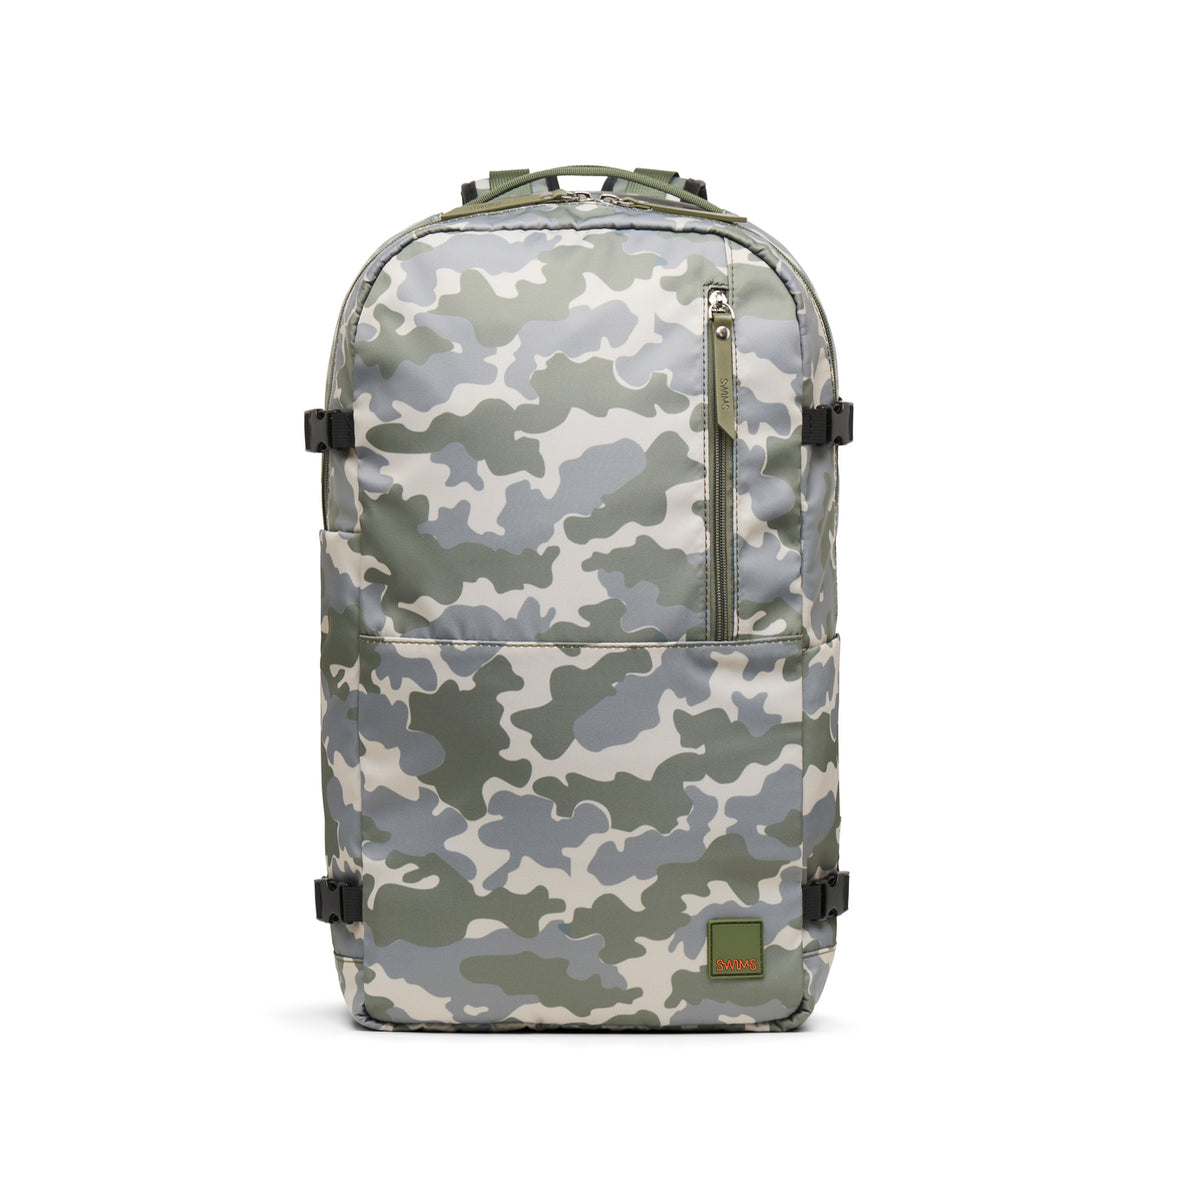 Motion Backpack - background::white,variant::Dessert Camo